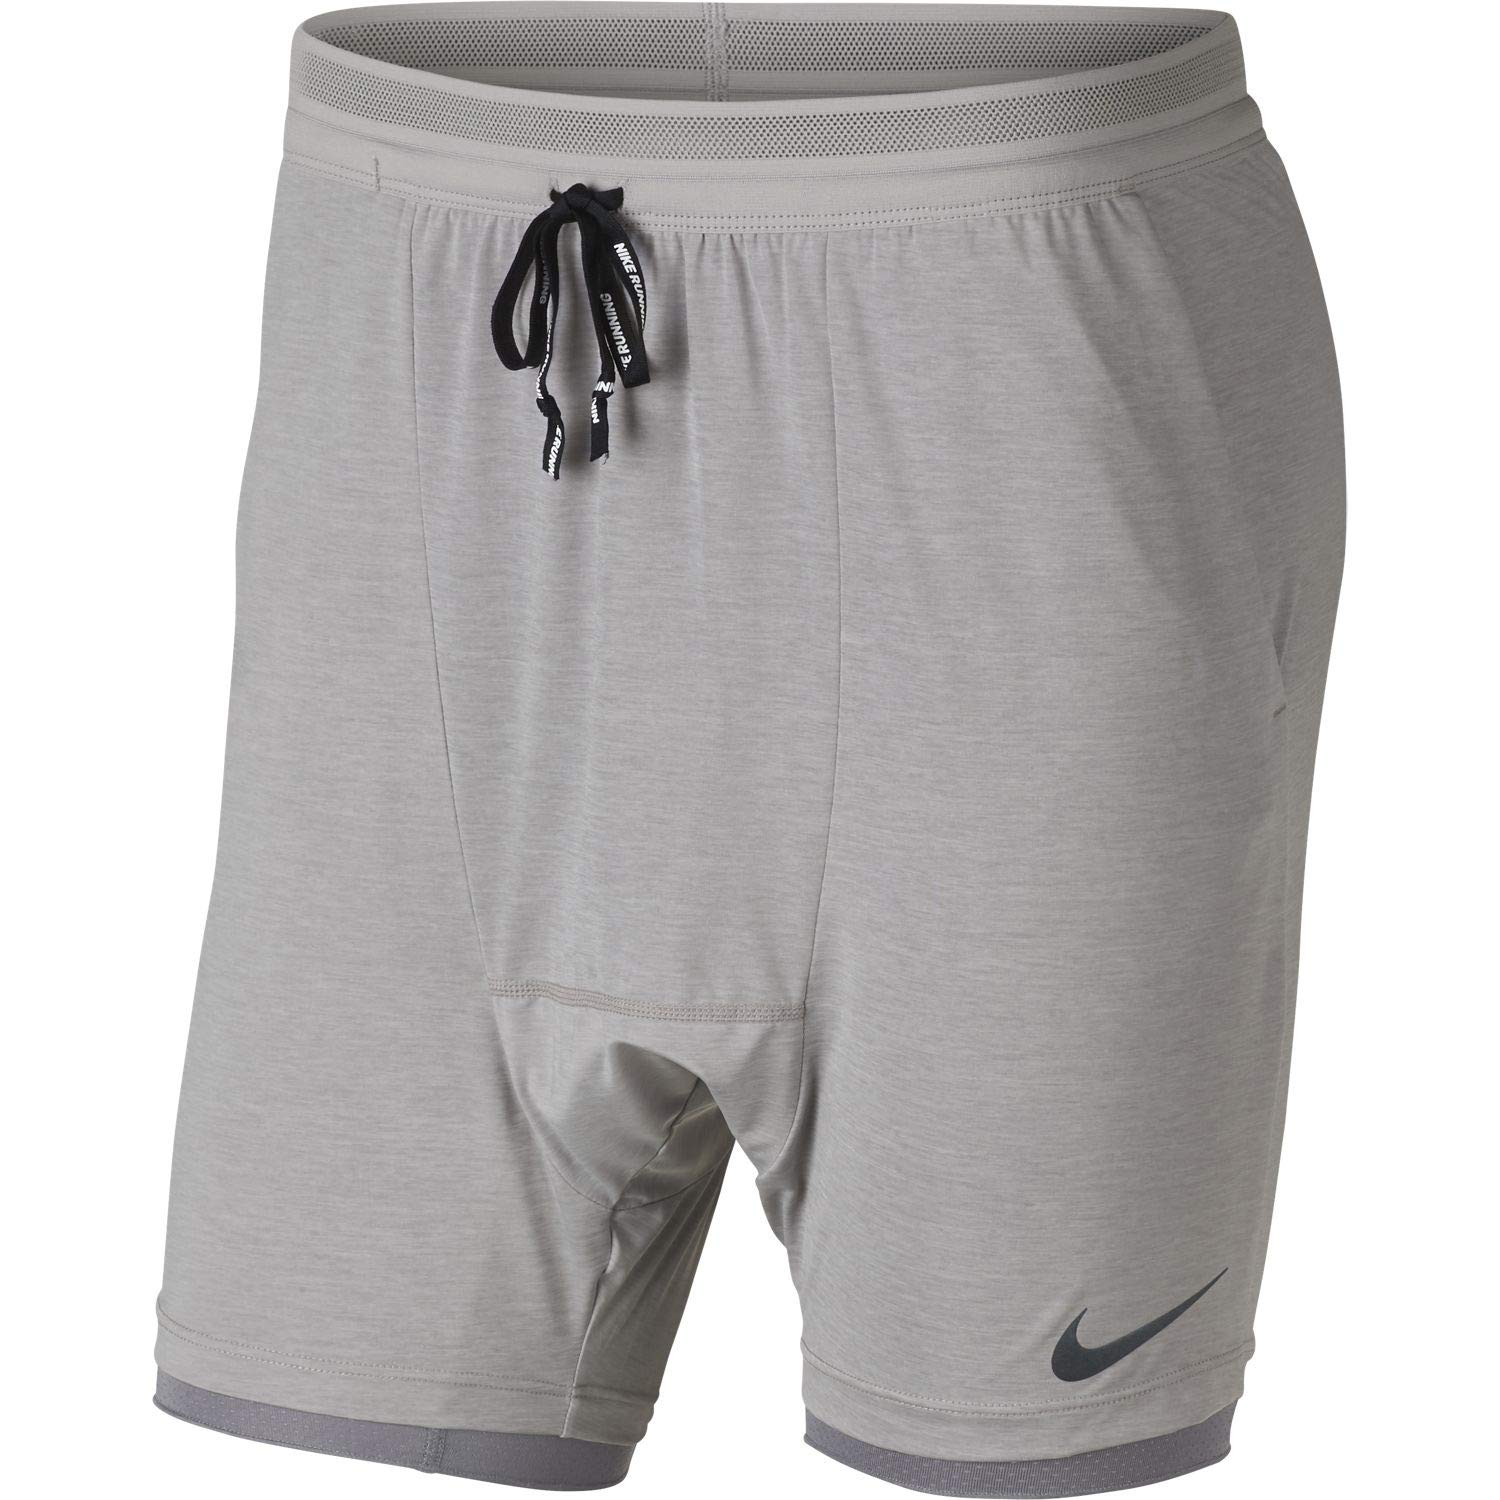 28fad4296fe85 Amazon.com: Nike Run Division Flex Stride Run Division 2-in-1 Men's 7